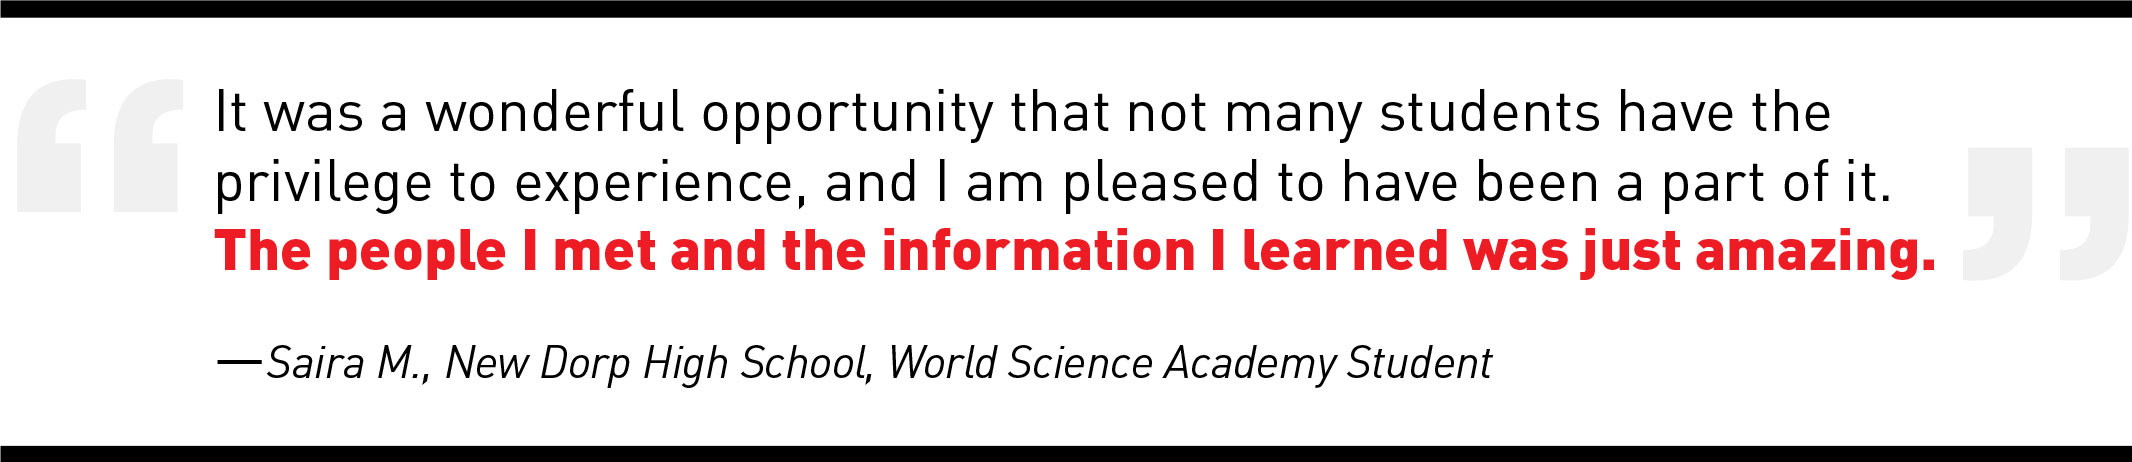 It was a wonderful opportunity that not many students have the  privilege to experience, and I am pleased to have been a part of it.  The people I met and the information I learned was just amazing. —Saira M., New Dorp High School, World Science Academy Student